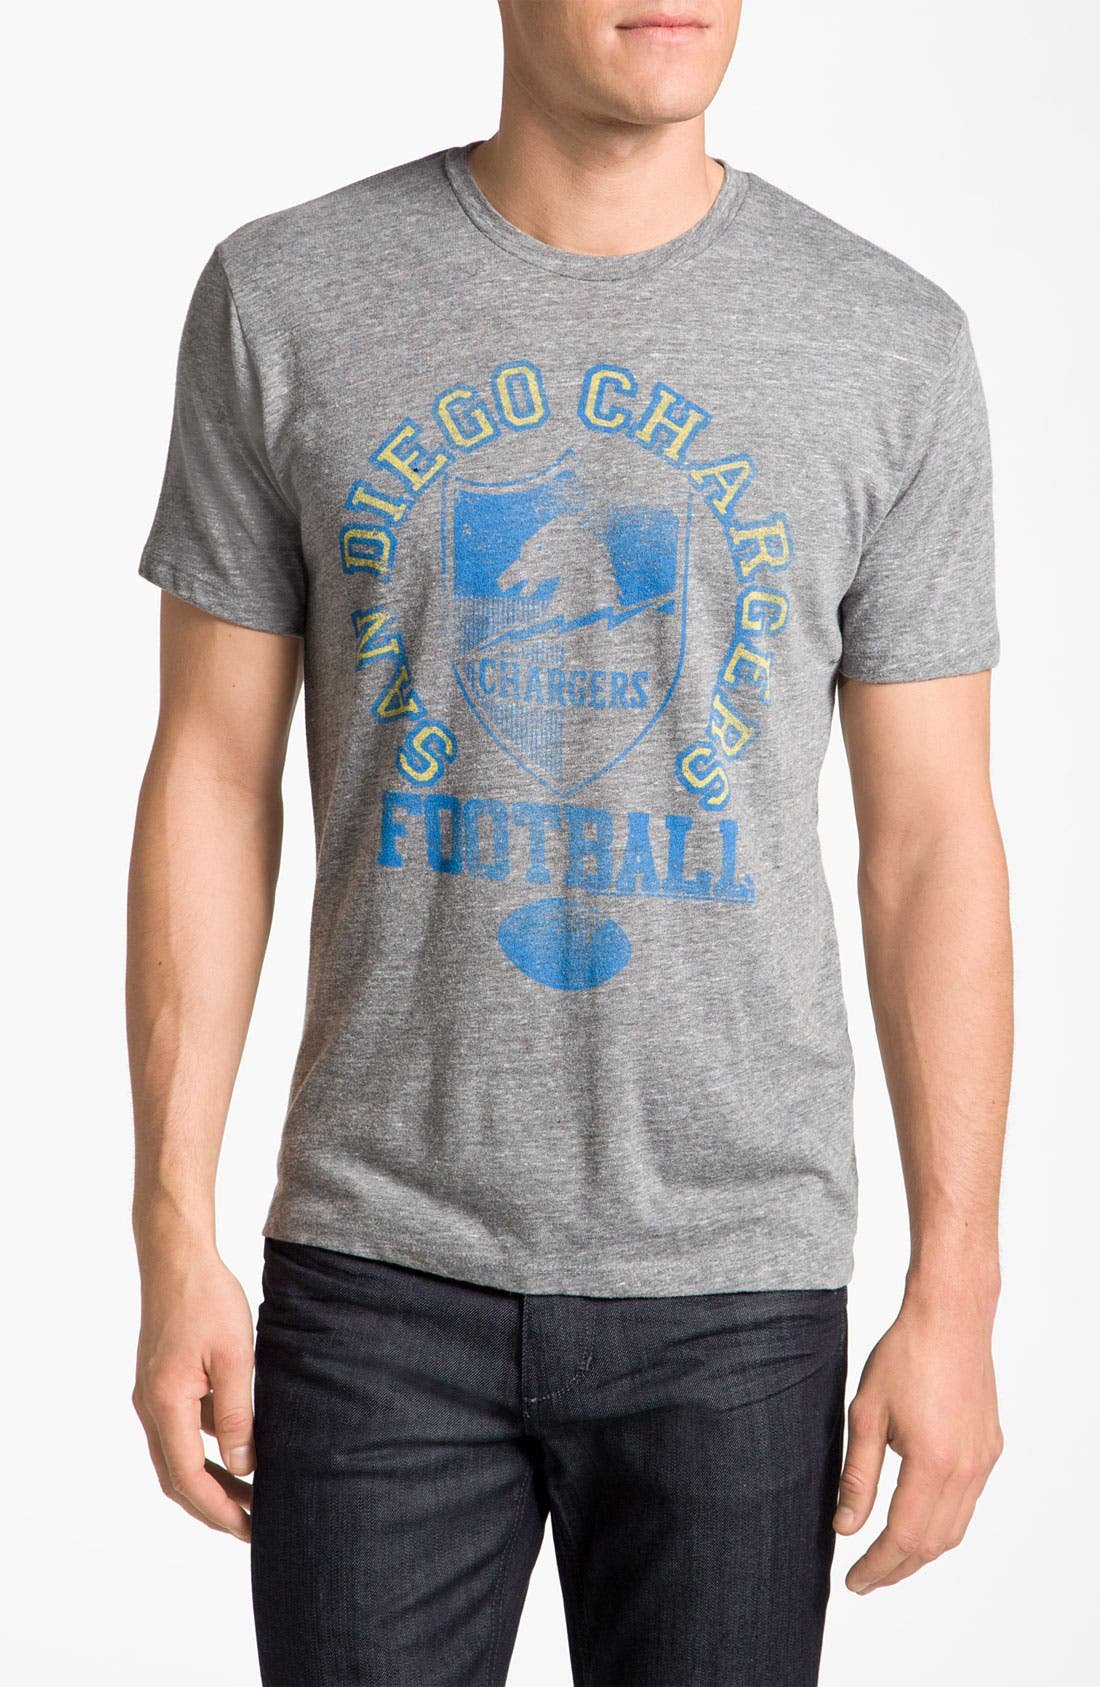 Alternate Image 1 Selected - Junk Food 'San Diego Chargers' Graphic Crewneck T-Shirt